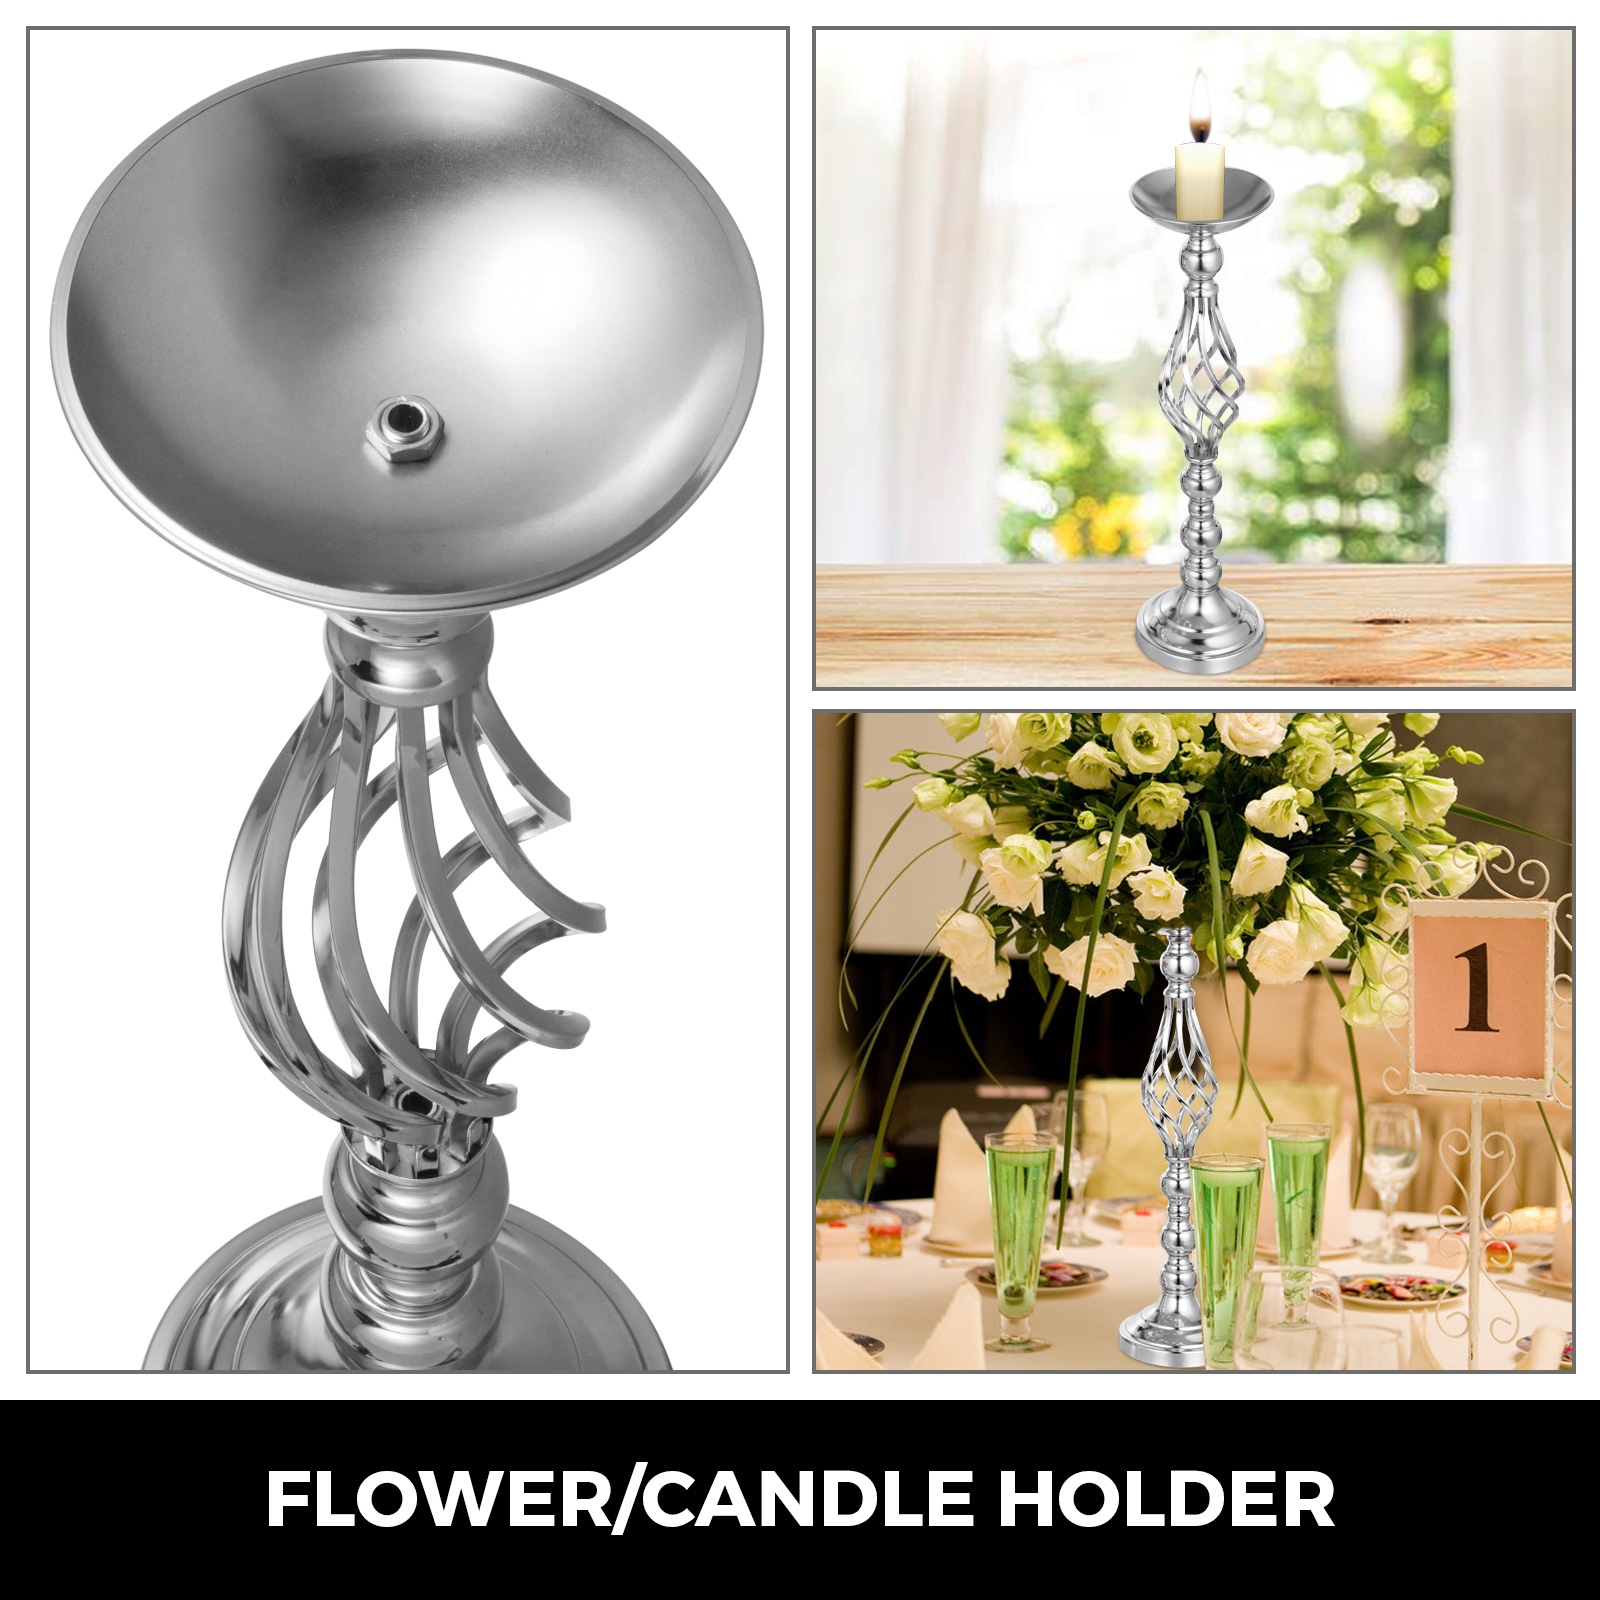 Flower-Rack-for-Wedding-Metal-Candle-Stand-4-11pcs-Centerpiece-Flower-Vase thumbnail 15